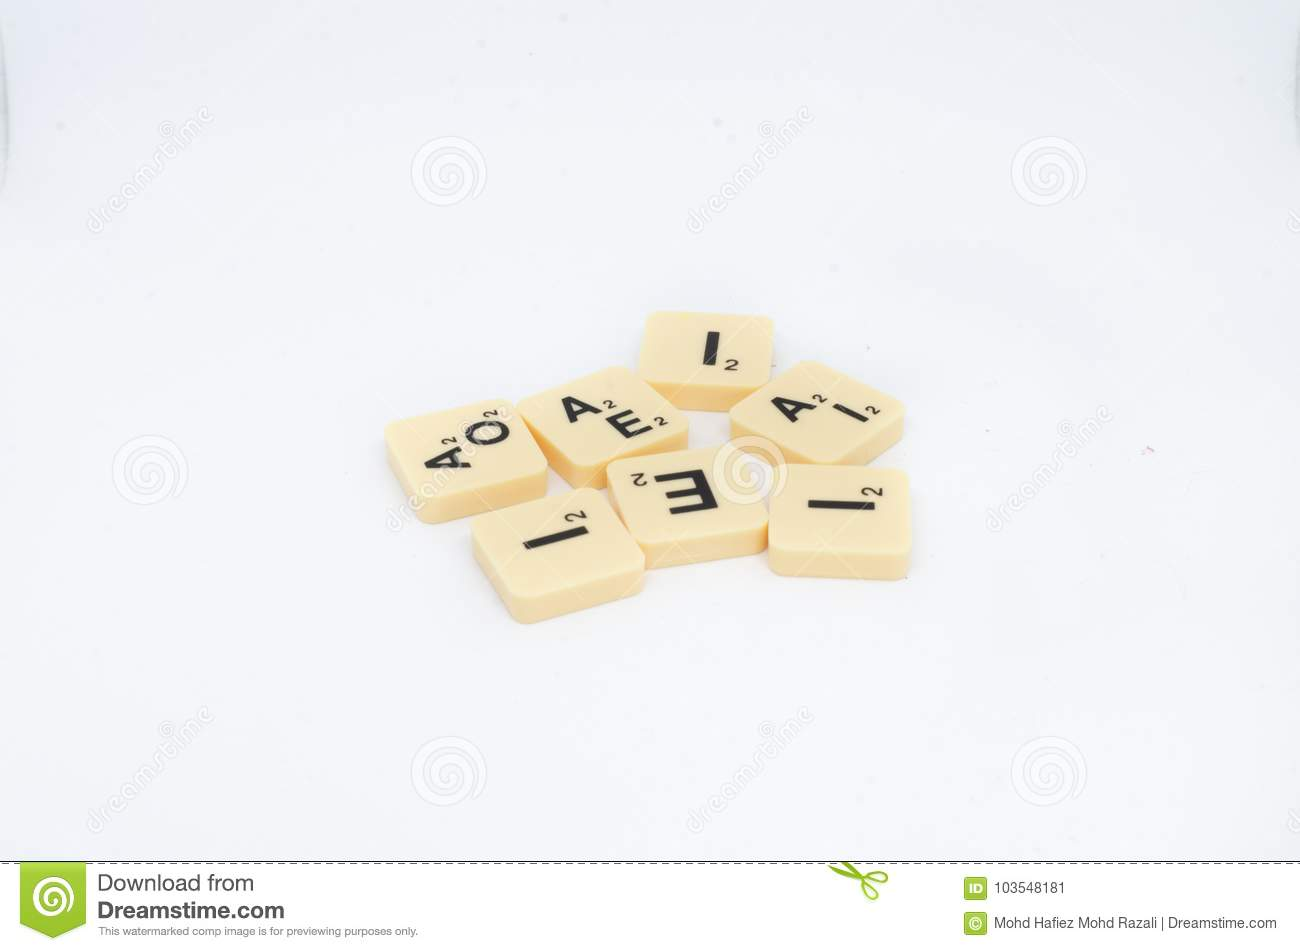 Scrabble board game letter blocks isolated on a white background